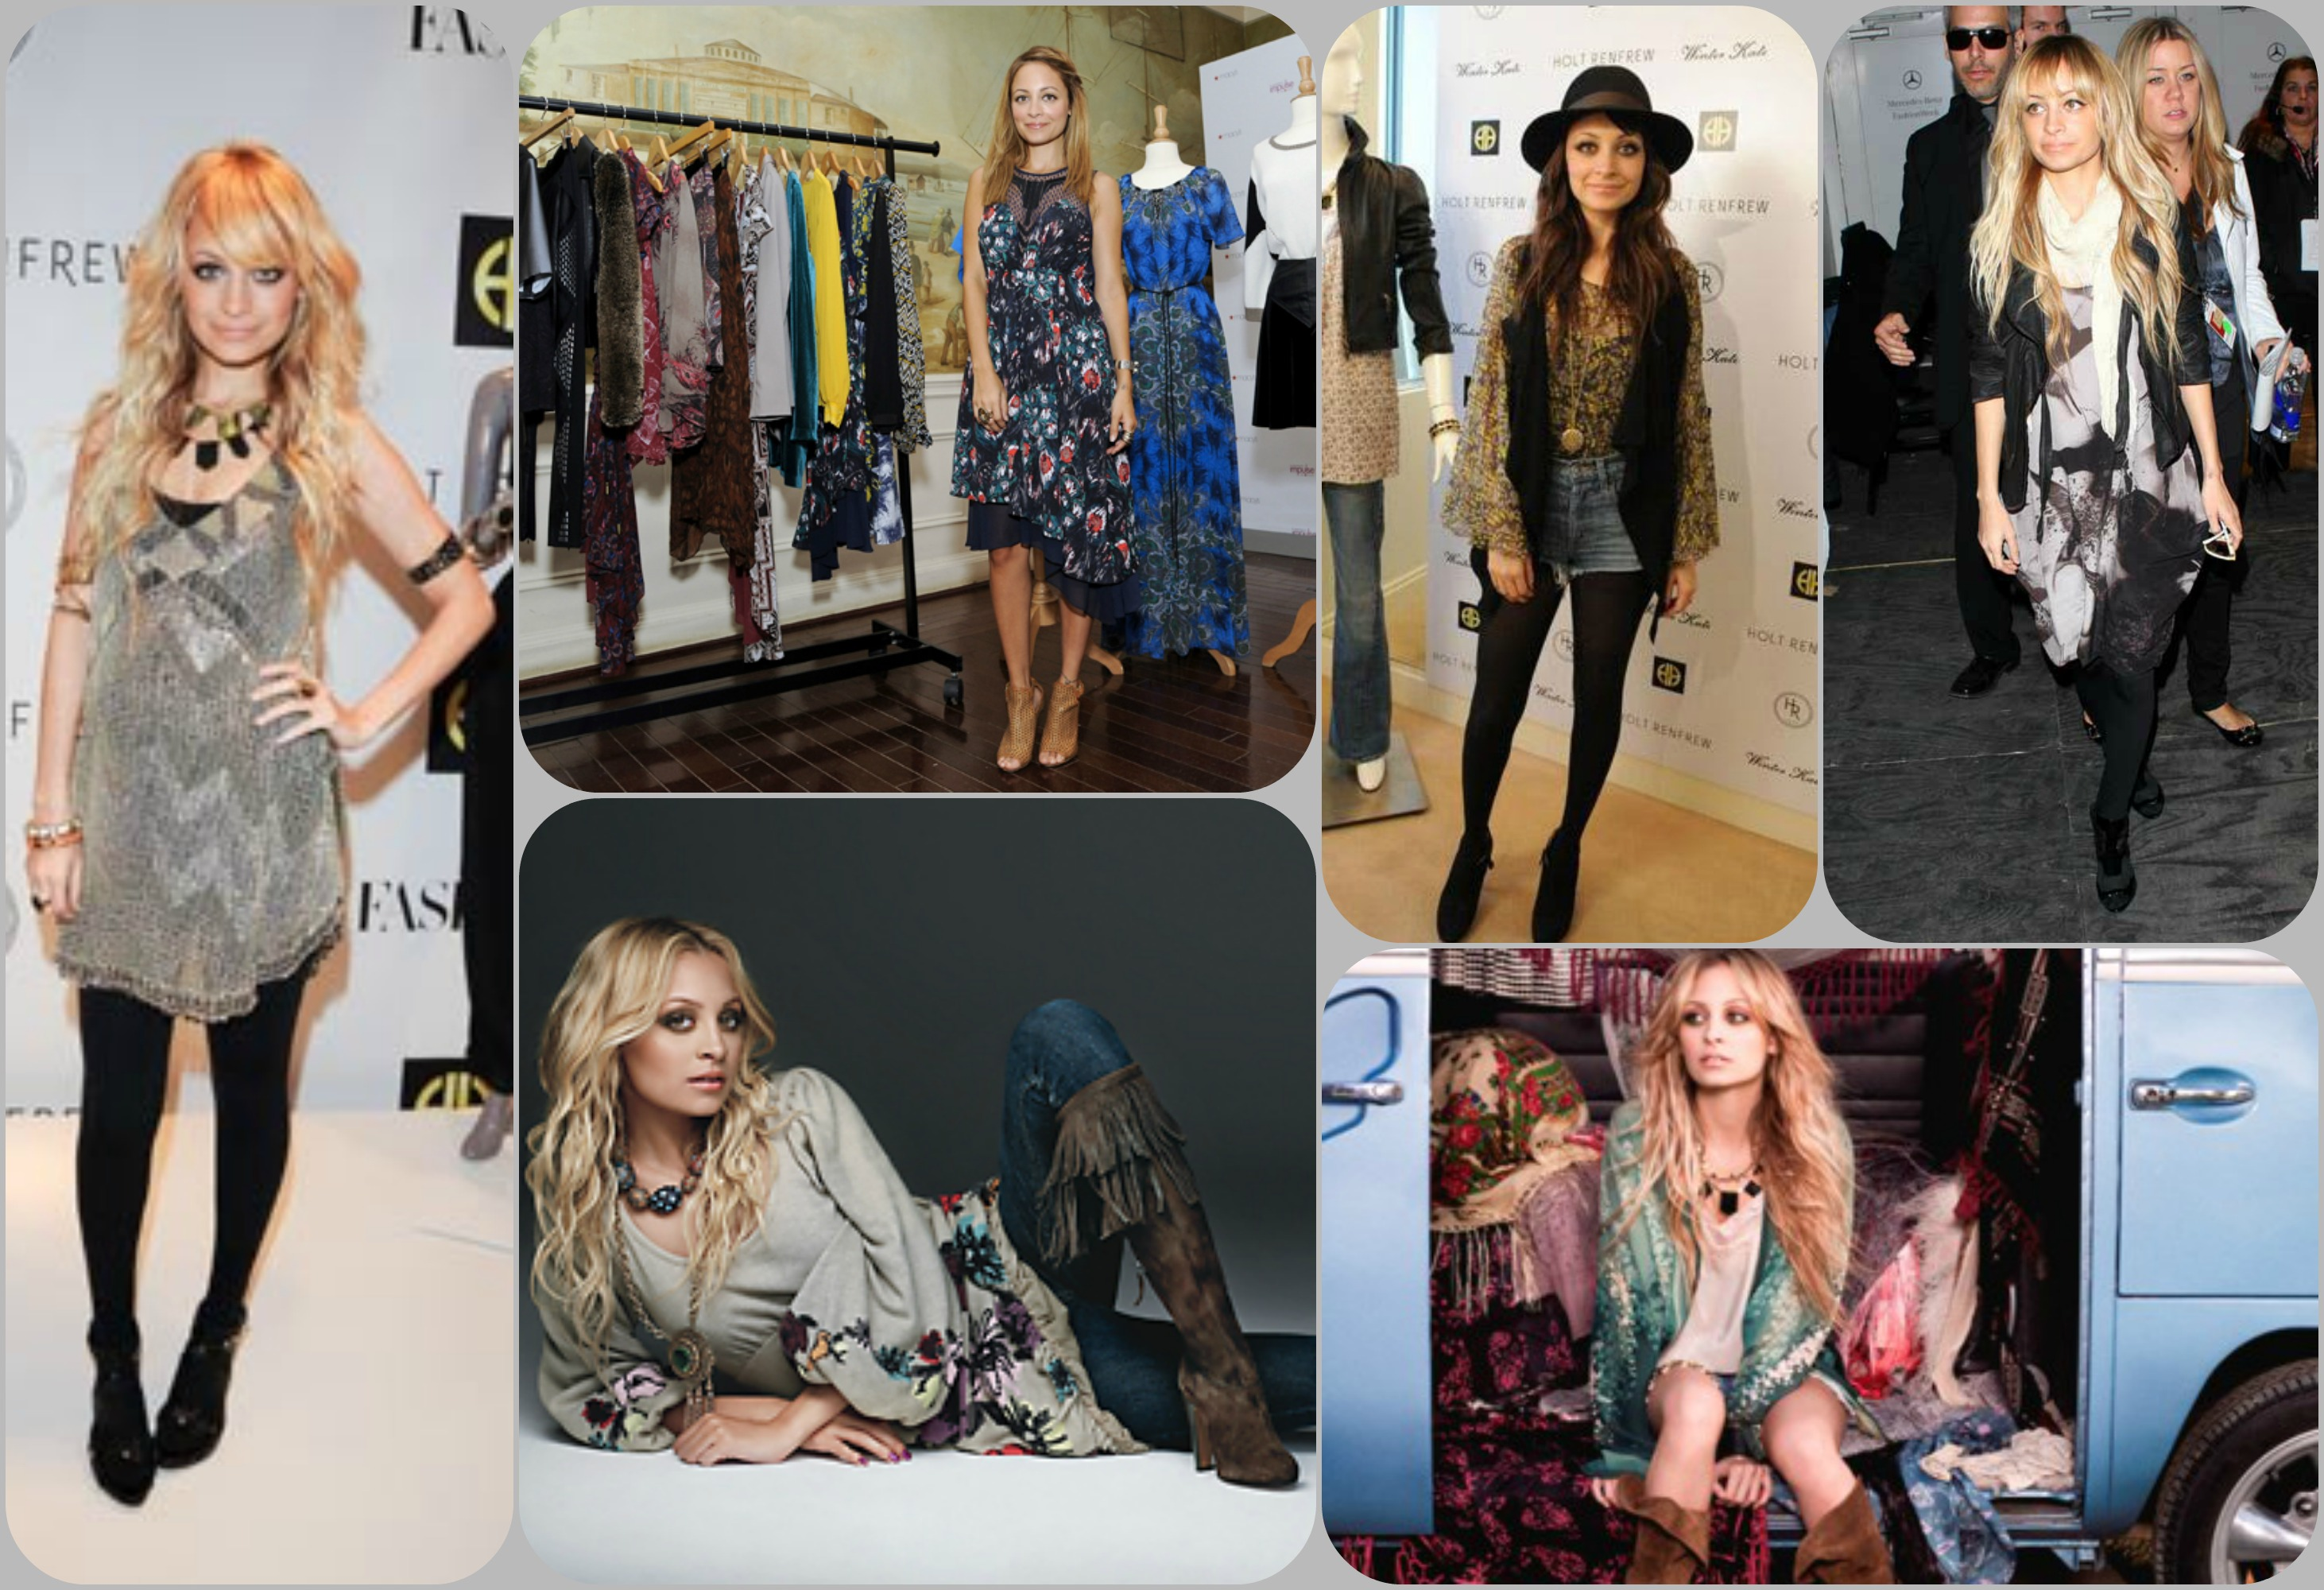 ... Lady - Blog - How to rock Earthy and Bohemian Style: Boho Chic